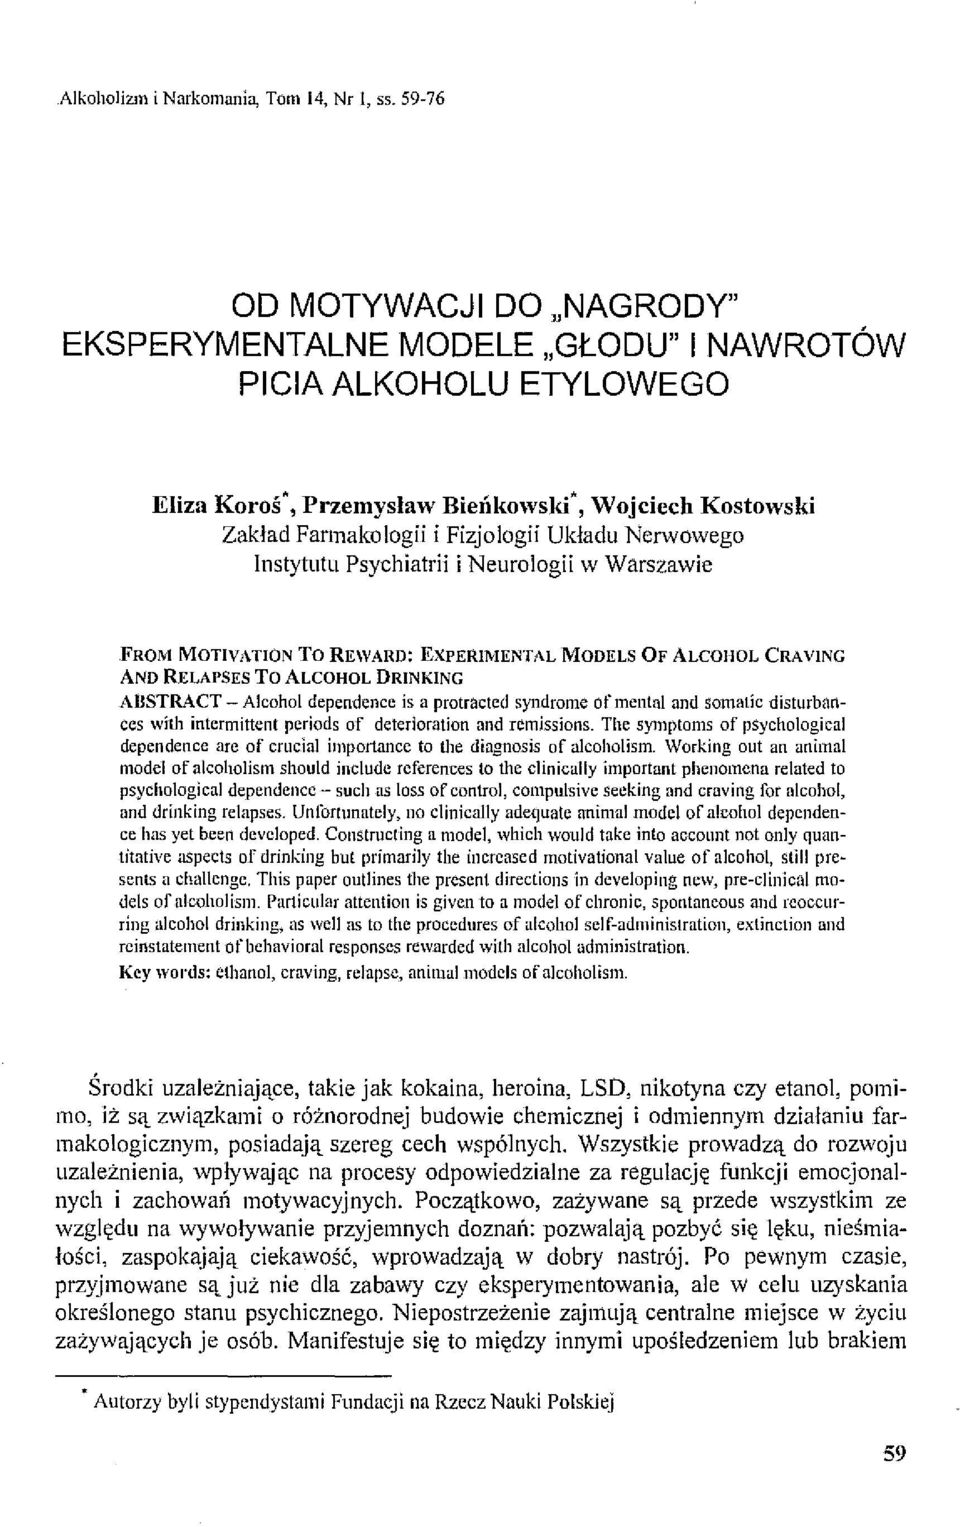 Nerwowego Instytutu Psychiatrii i Neurologii w Warszawie FROM MOTIVATION To REWARD: EXPERIMENTAL MODELS OF ALCOI-IOL CRAVING AND RELAPSES To ALCOHOL DRINKING ABSTRACT - Aleohol dependenee is a